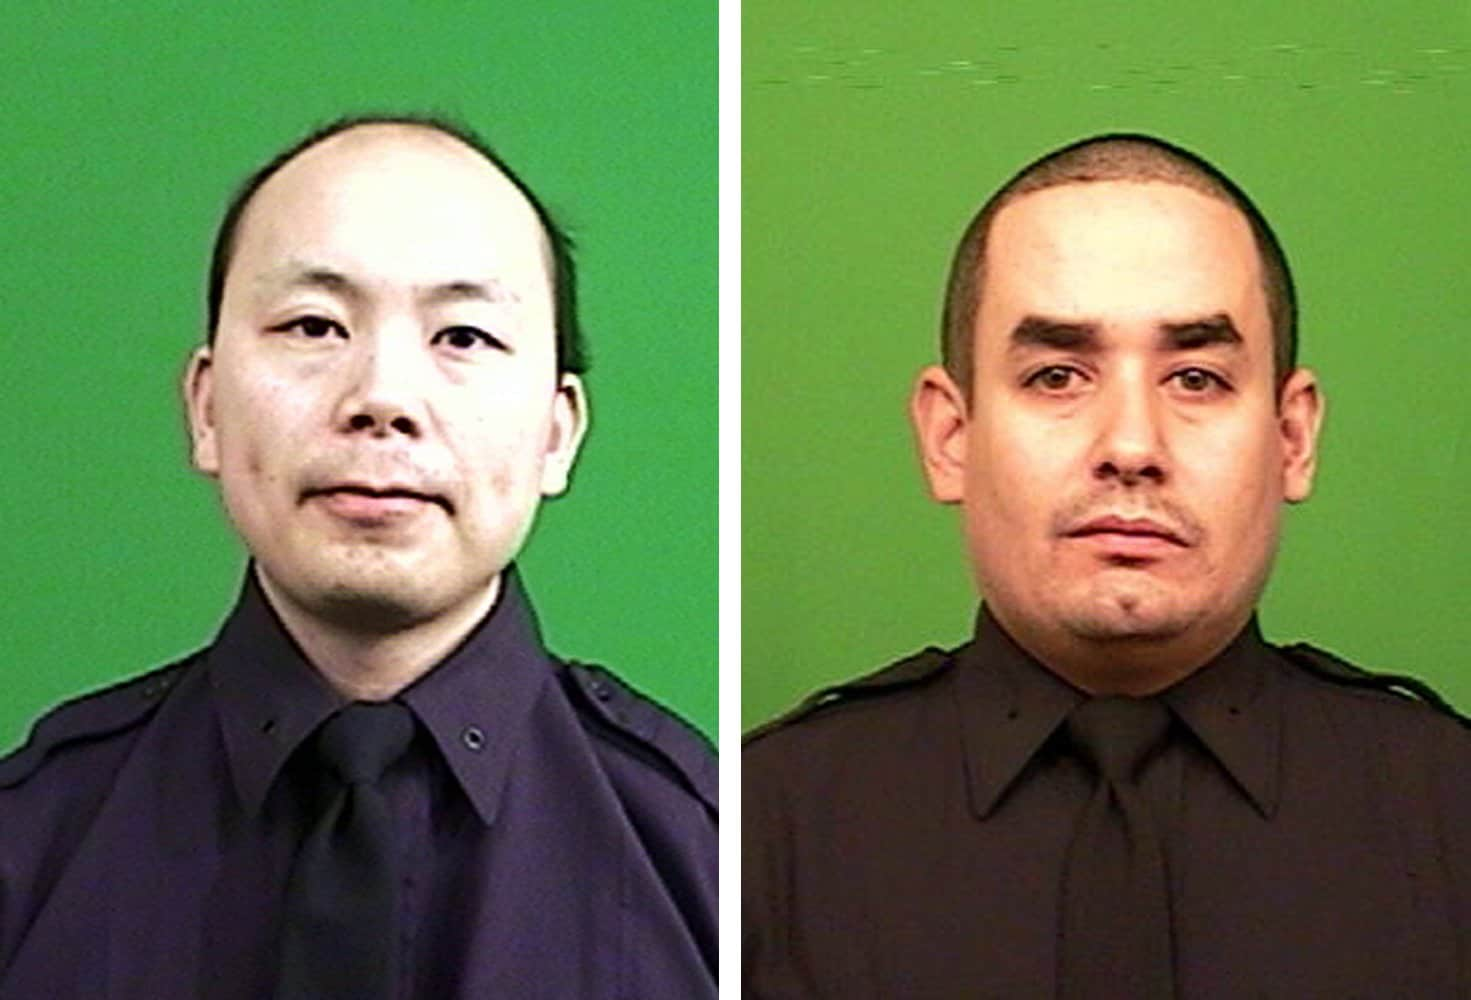 The brutal ambush of NYPD Officers Wenjian Liu (L) and Rafael Ramos (R) last month grotesquely displayed the dangerous strain between police officers and the public.